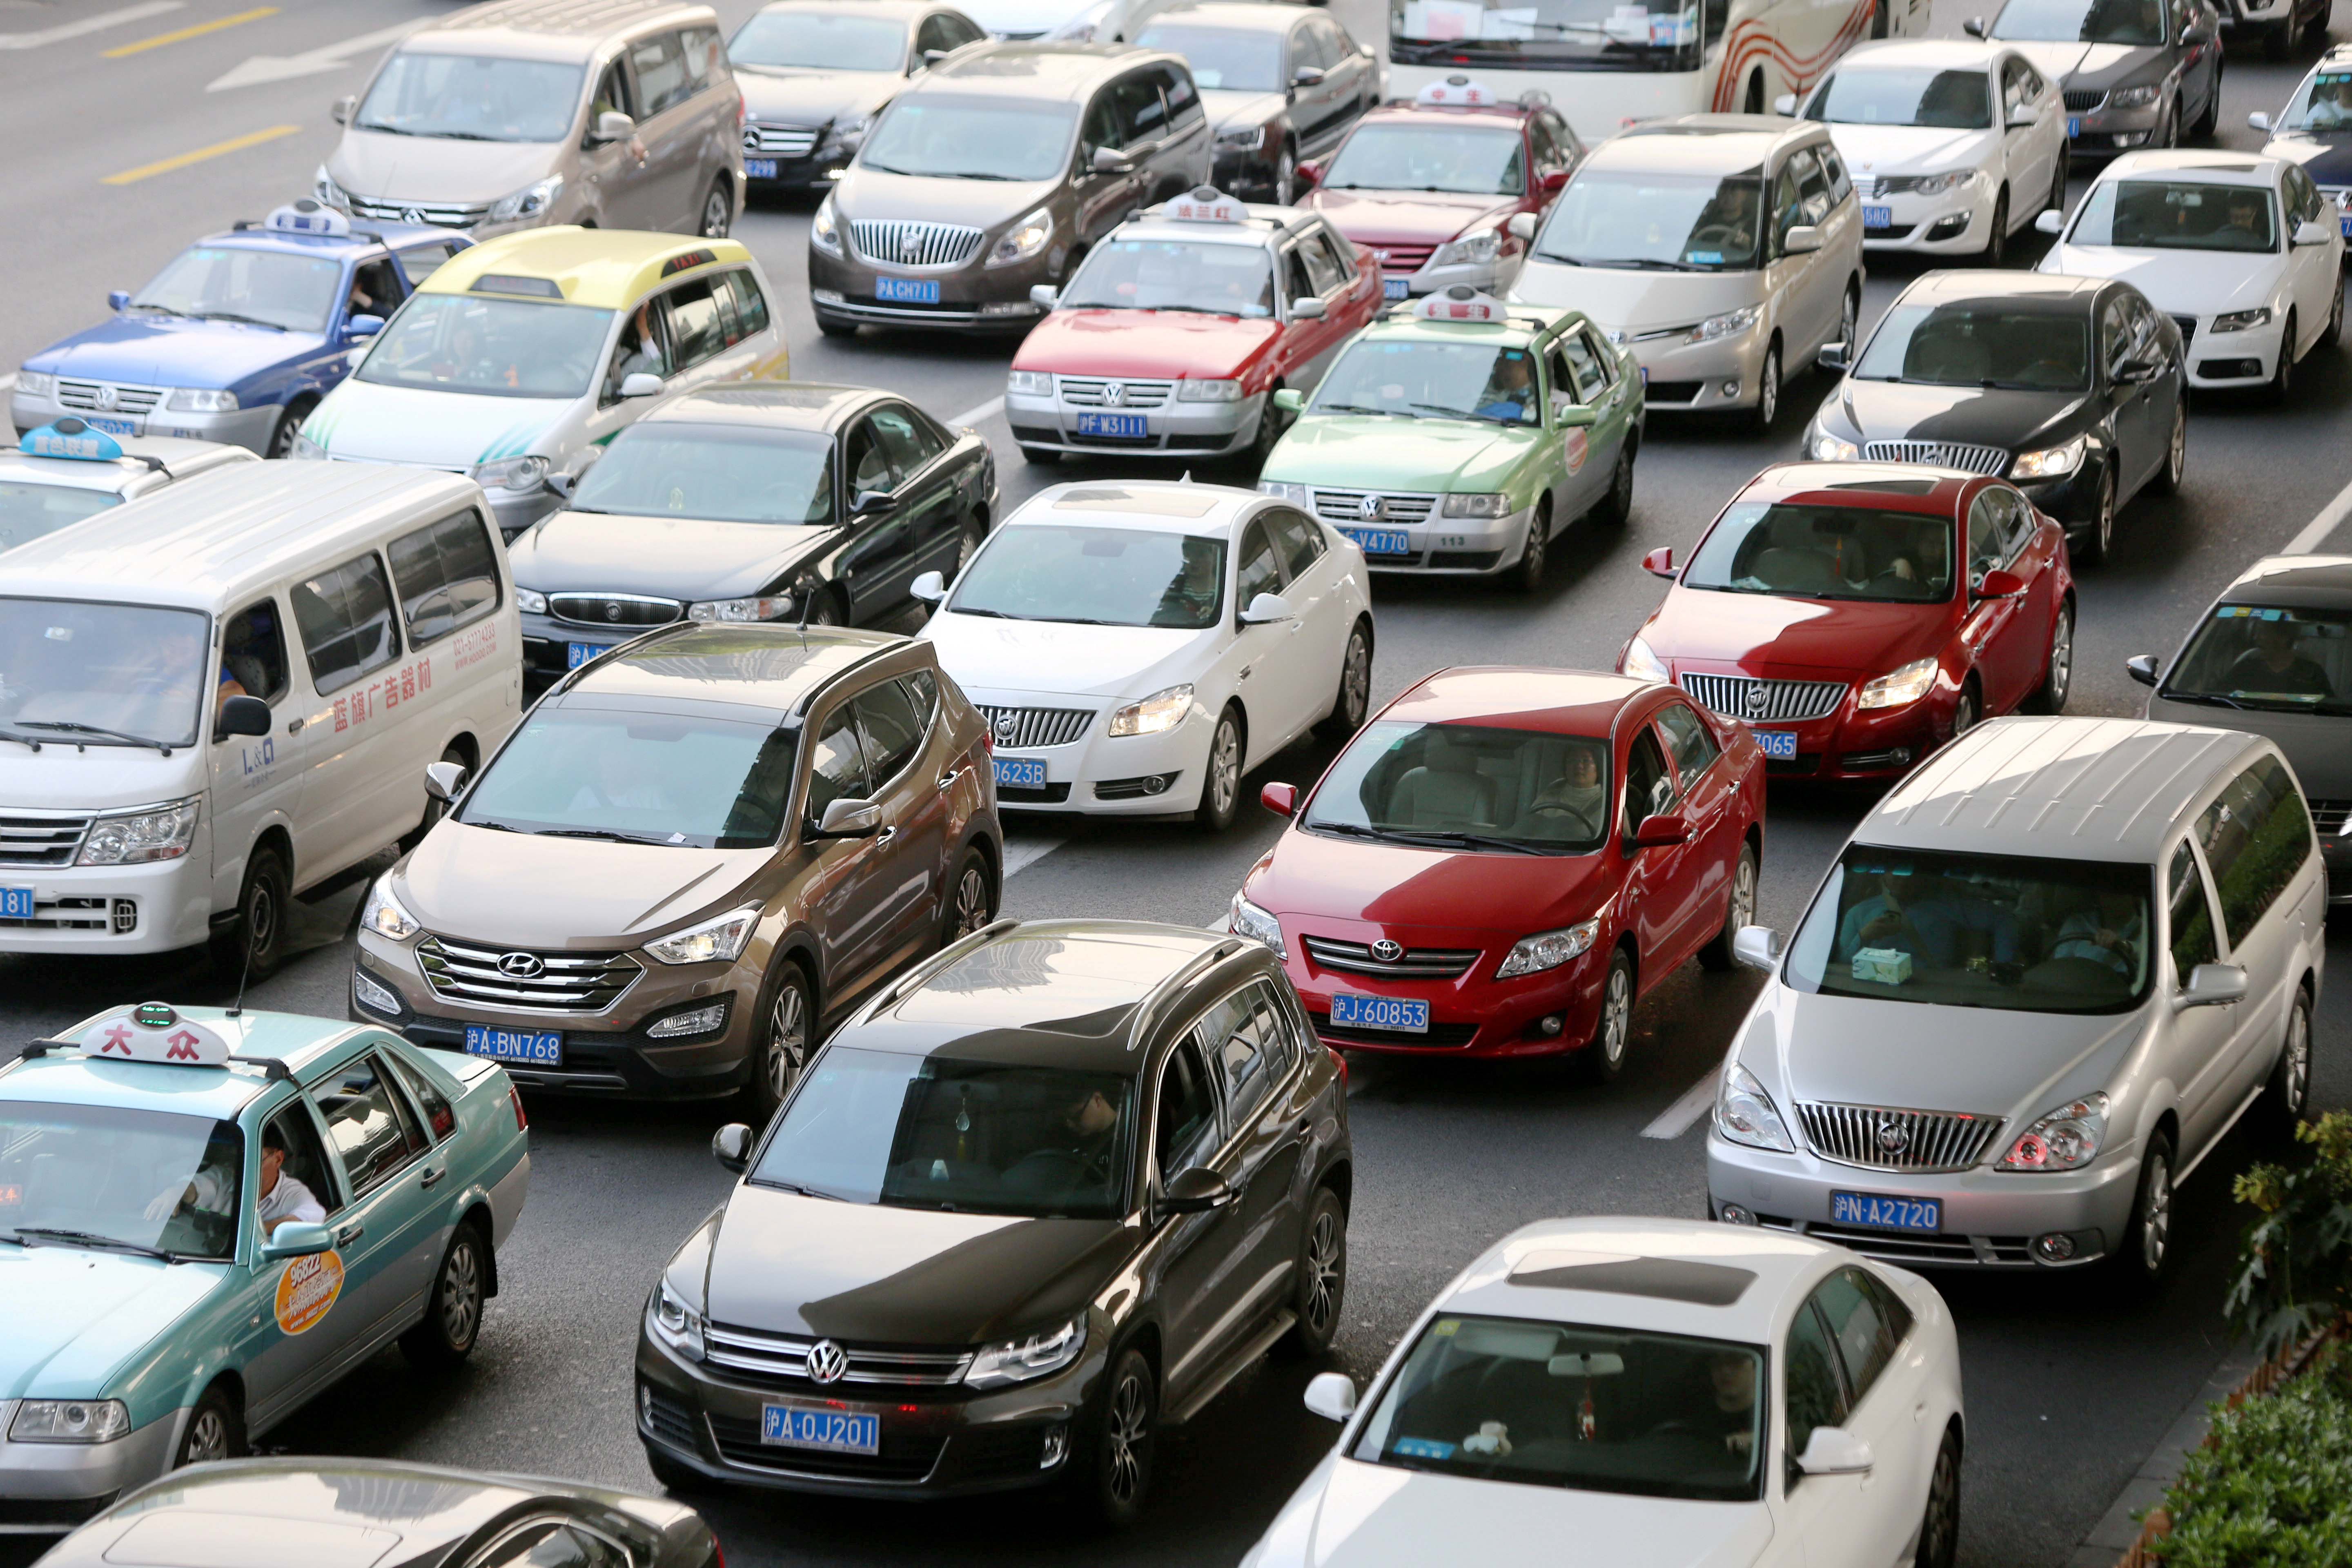 Masses of cars travel on a road in Shanghai, China, April 2, 2015. Concern for personal safety amid rising road rage is among the reasons China's SUV registrations surged 48 percent in the first quarter of this year, according to a research note Sanford C. Bernstein released May 27, 2015.